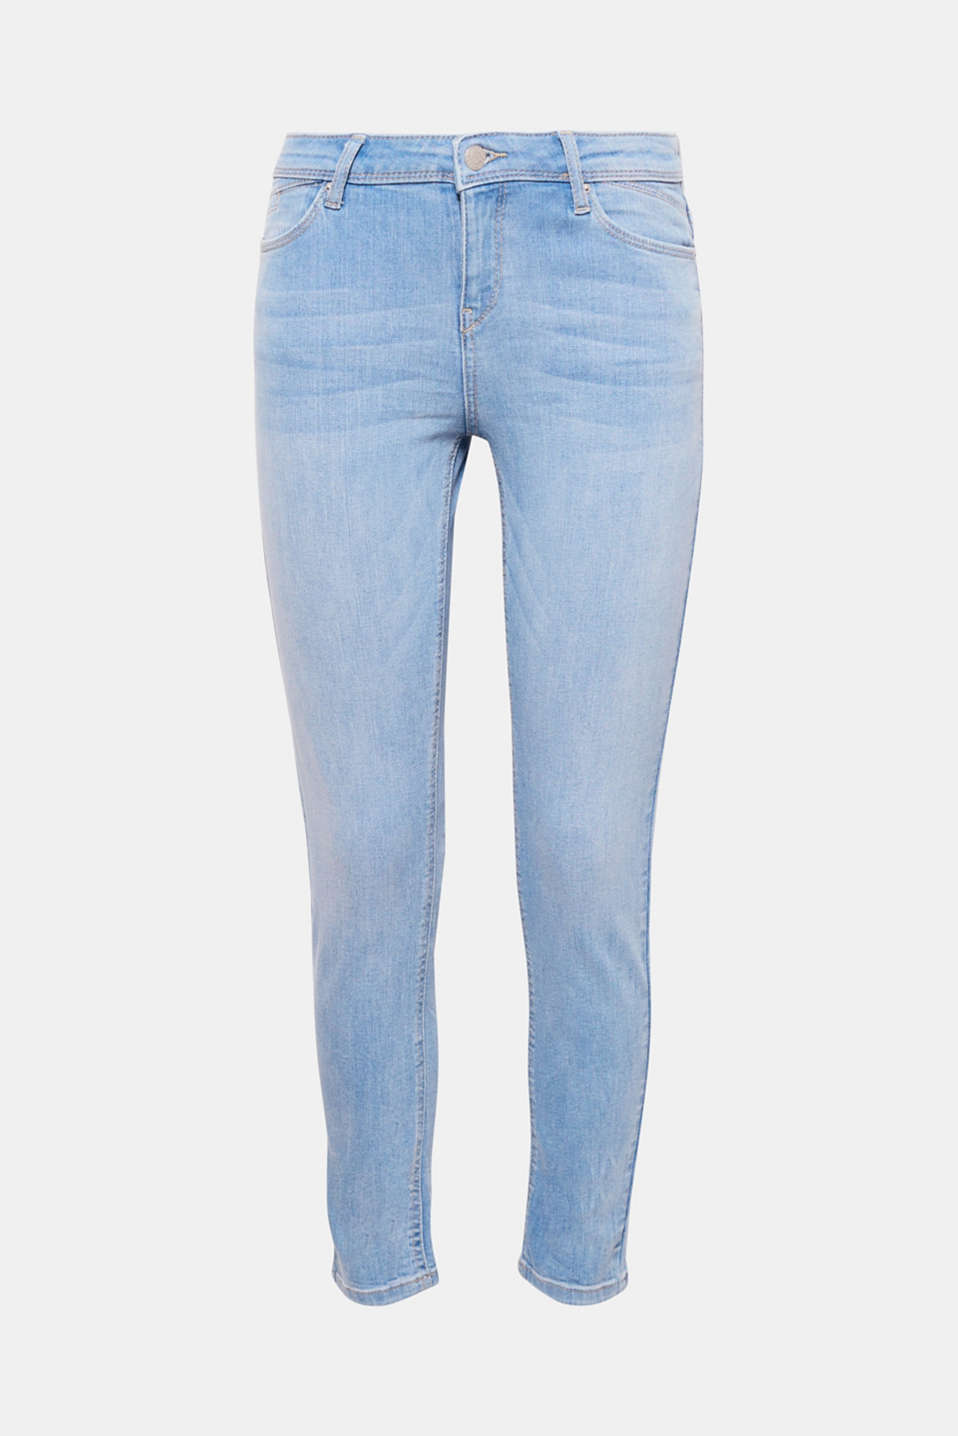 Say hello to your new summer jeans featuring cropped legs and a faded, bleached-effect wash!